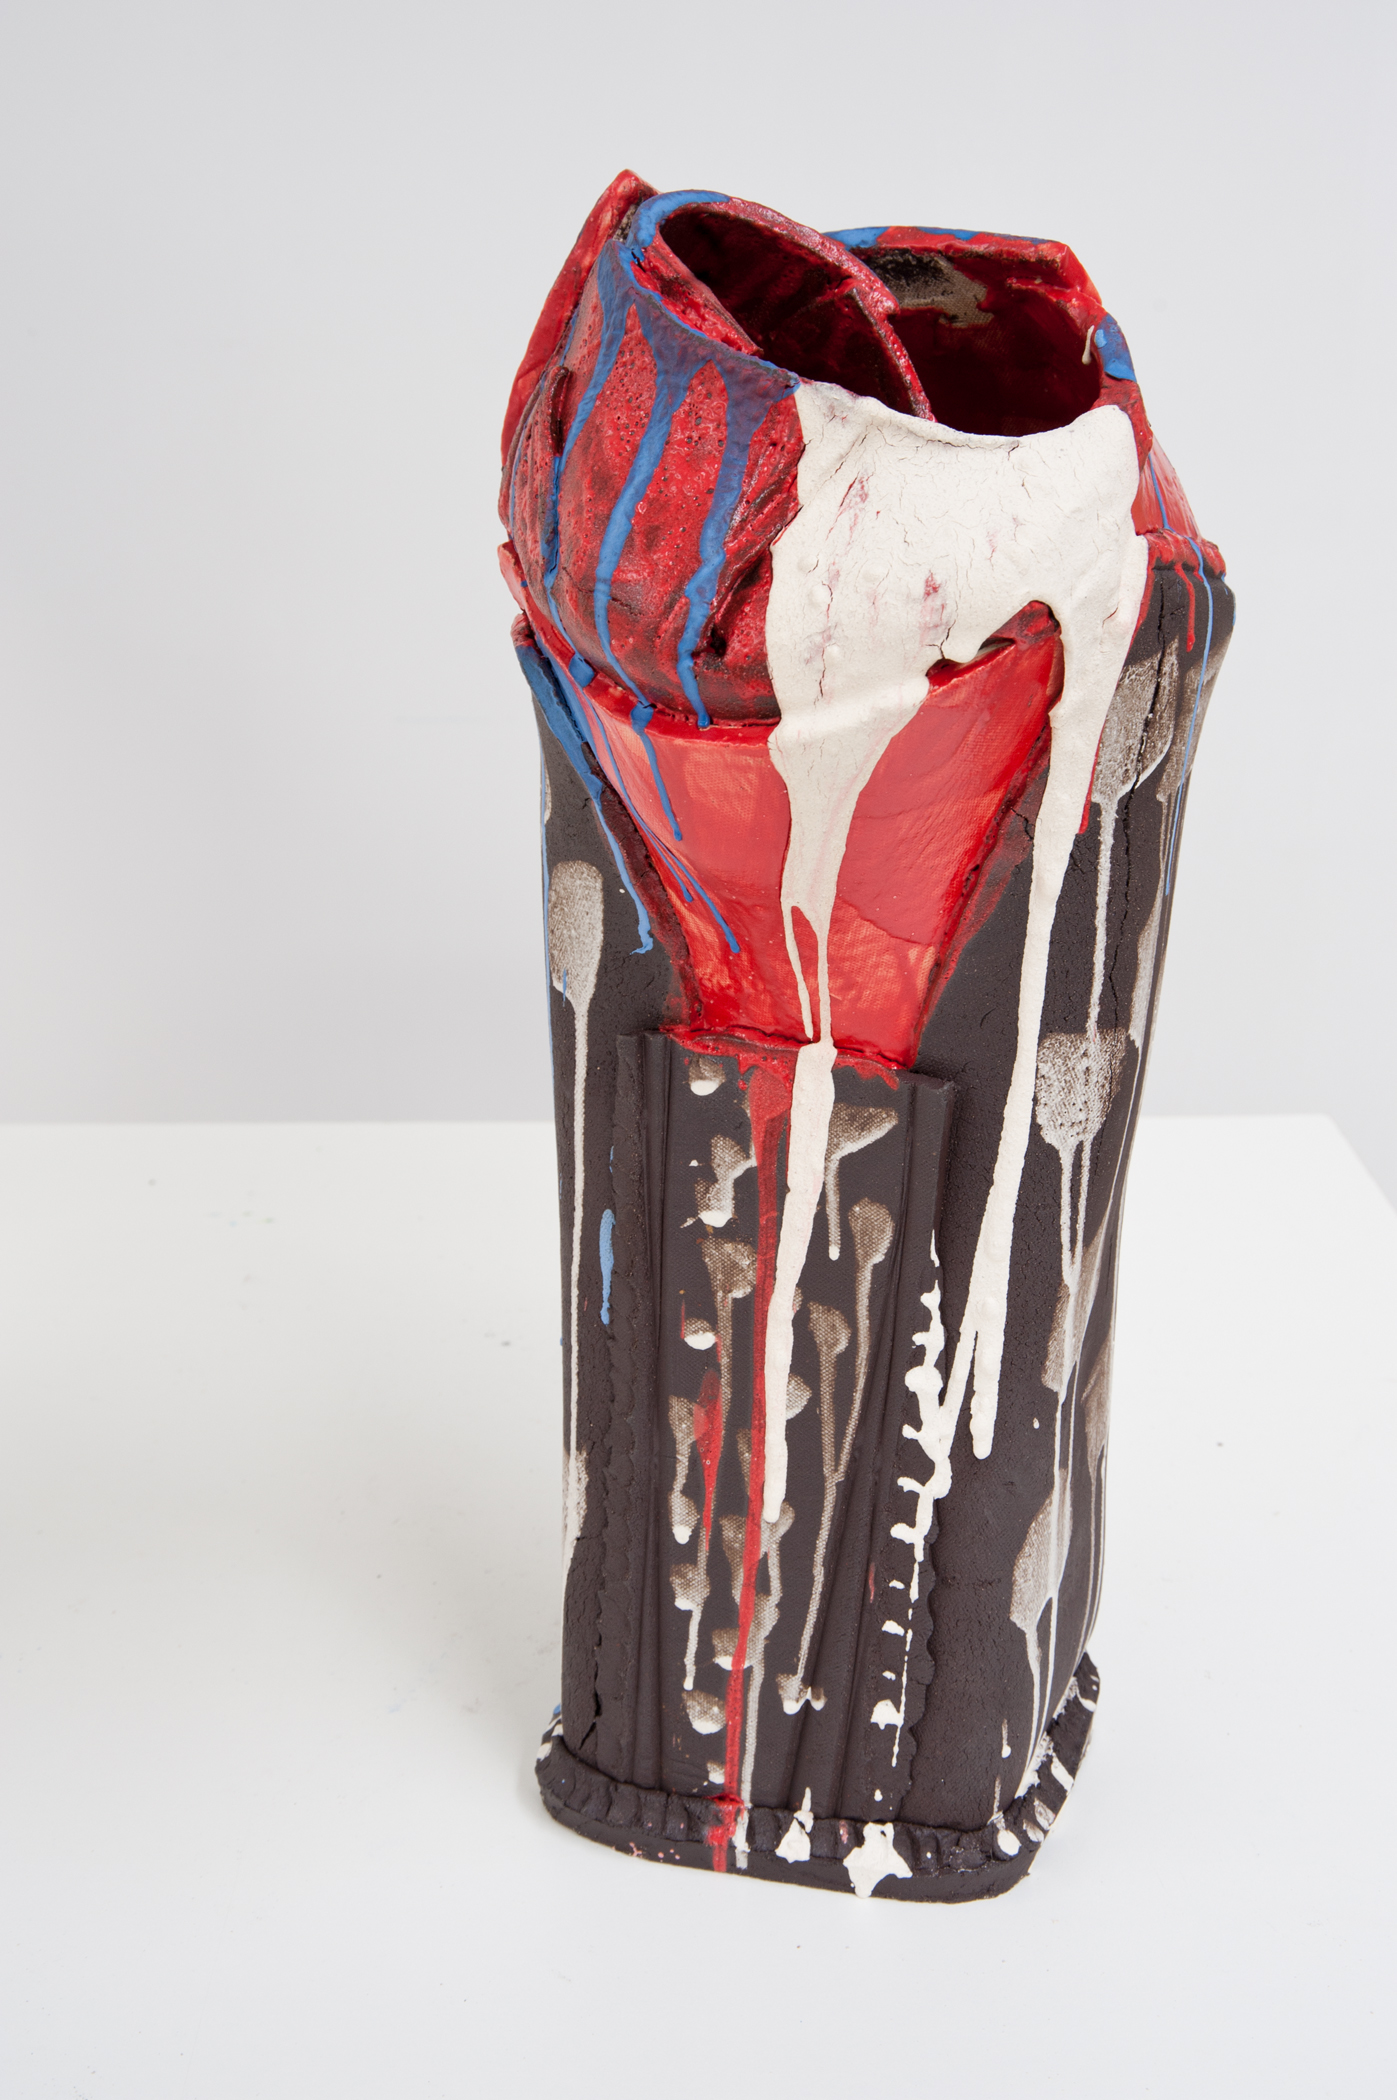 Torn Vessel I, Todi IV , 2012 Terracotta Clay 21 x 9 inches